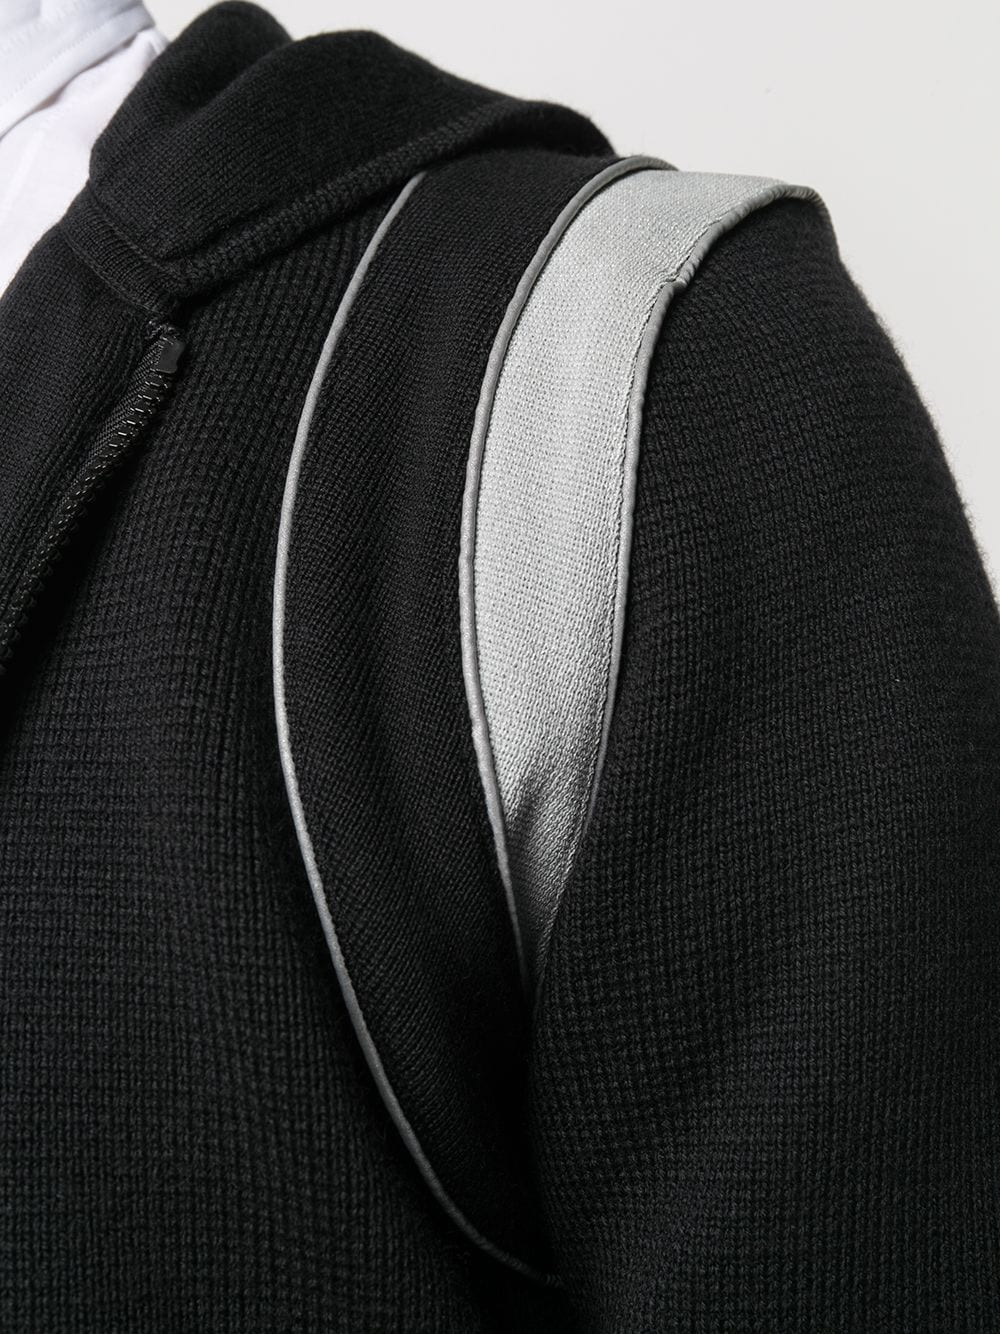 Picture of Givenchy | Jacket